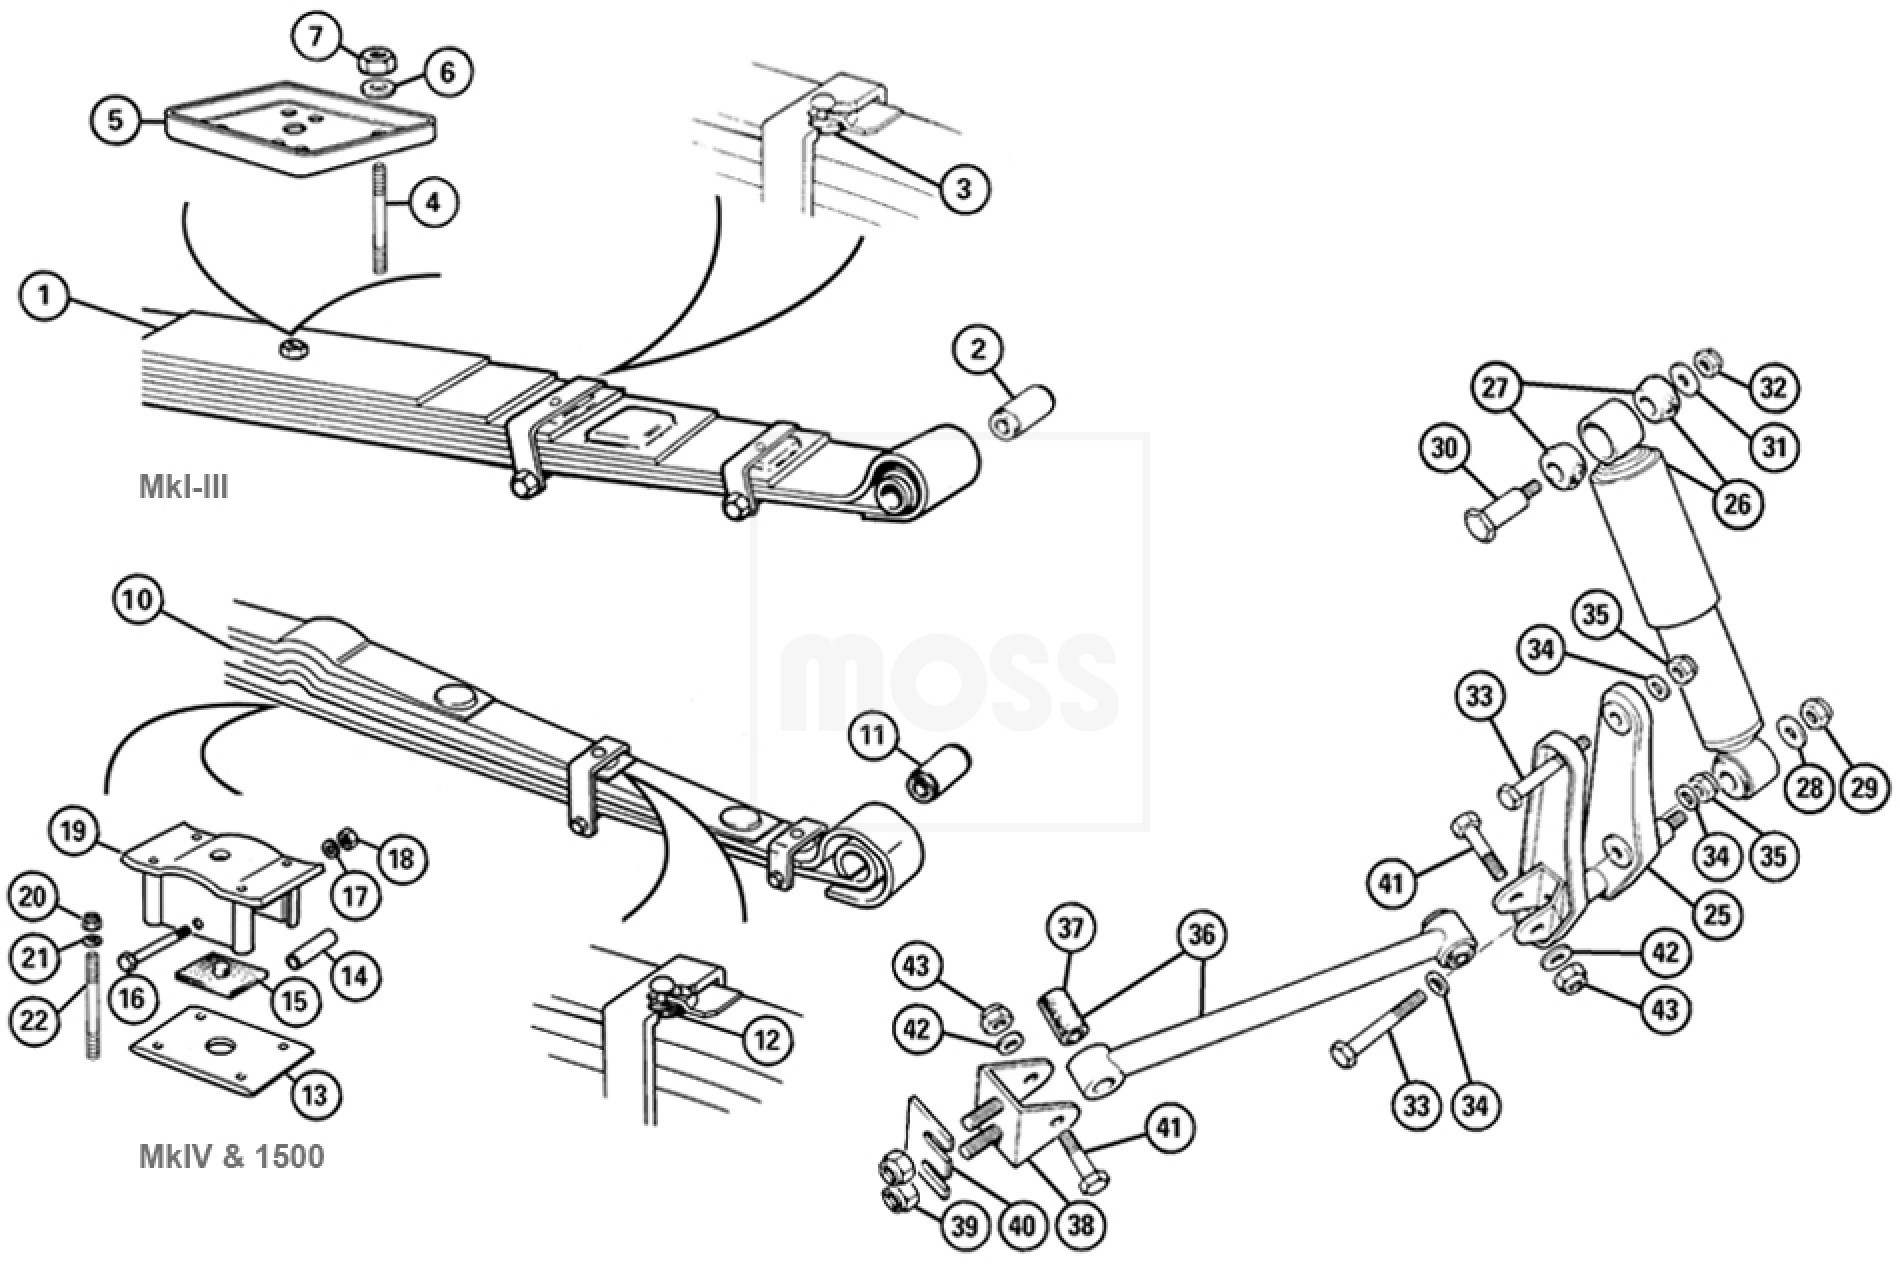 1971 mgb wiring diagram curtis snow plow triumph spitfire rear suspension imageresizertool com